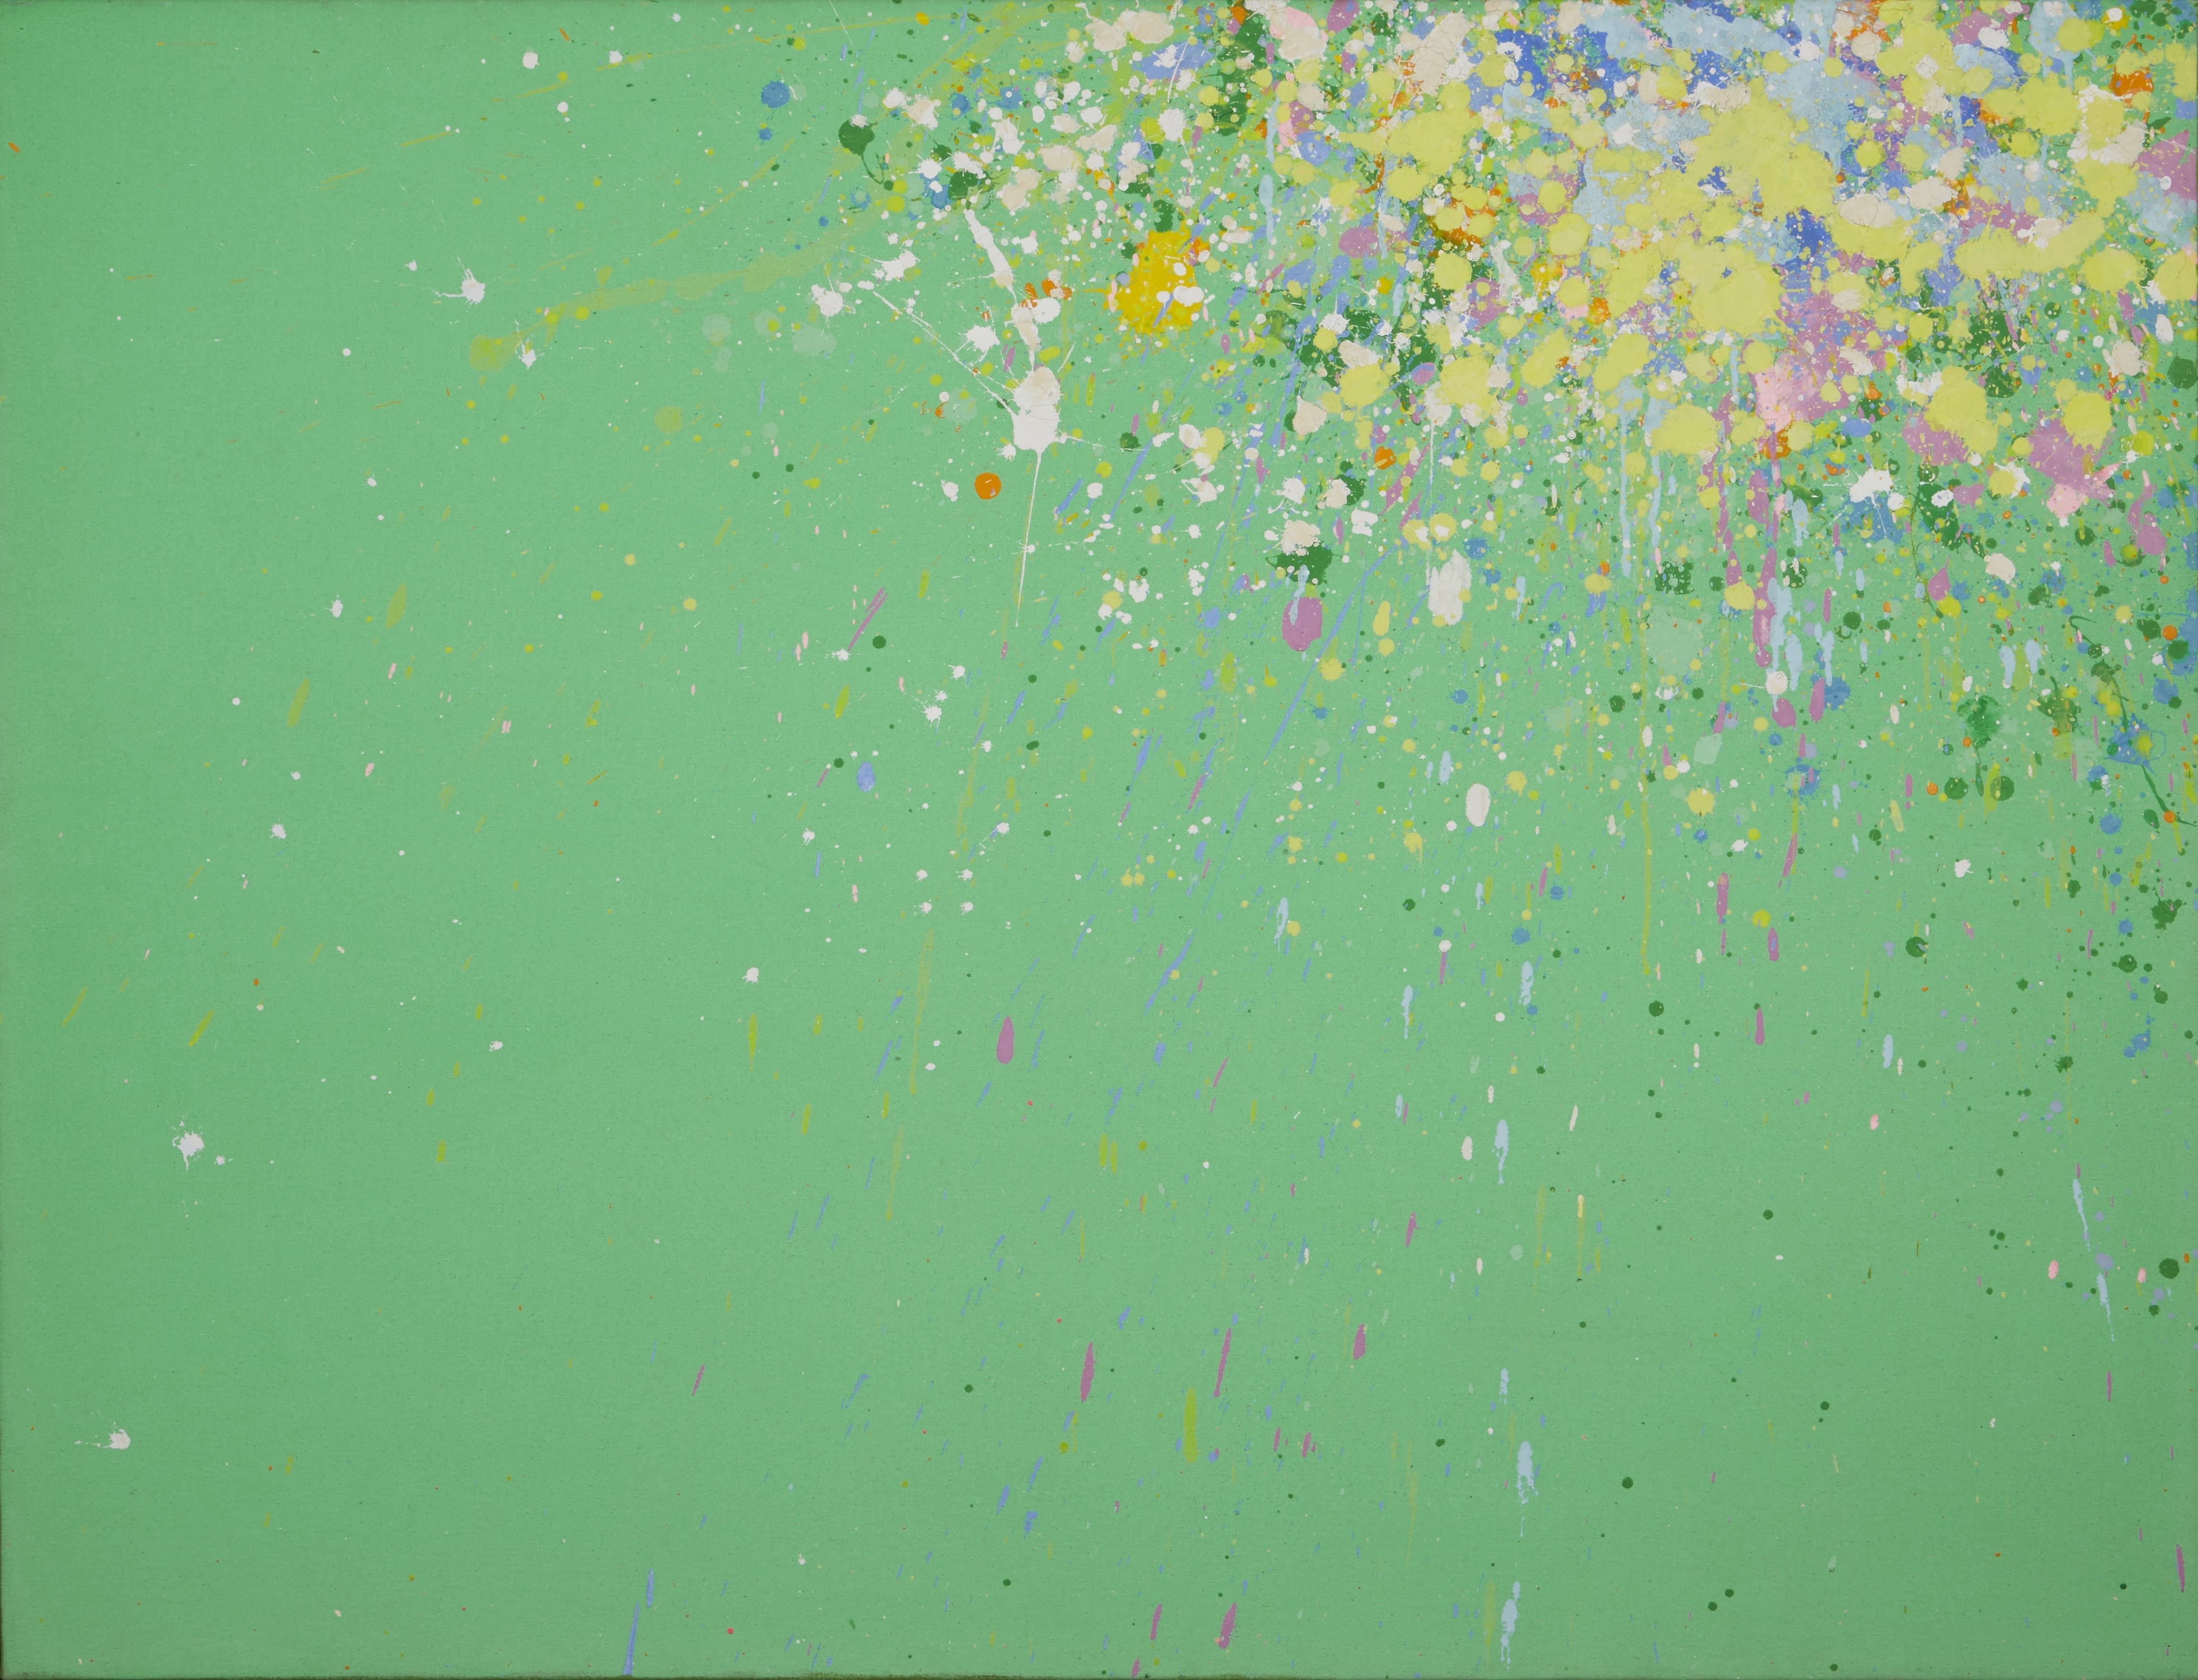 Lot 034: Walasse Ting All My Life is a Spring Acrylic on Canvas